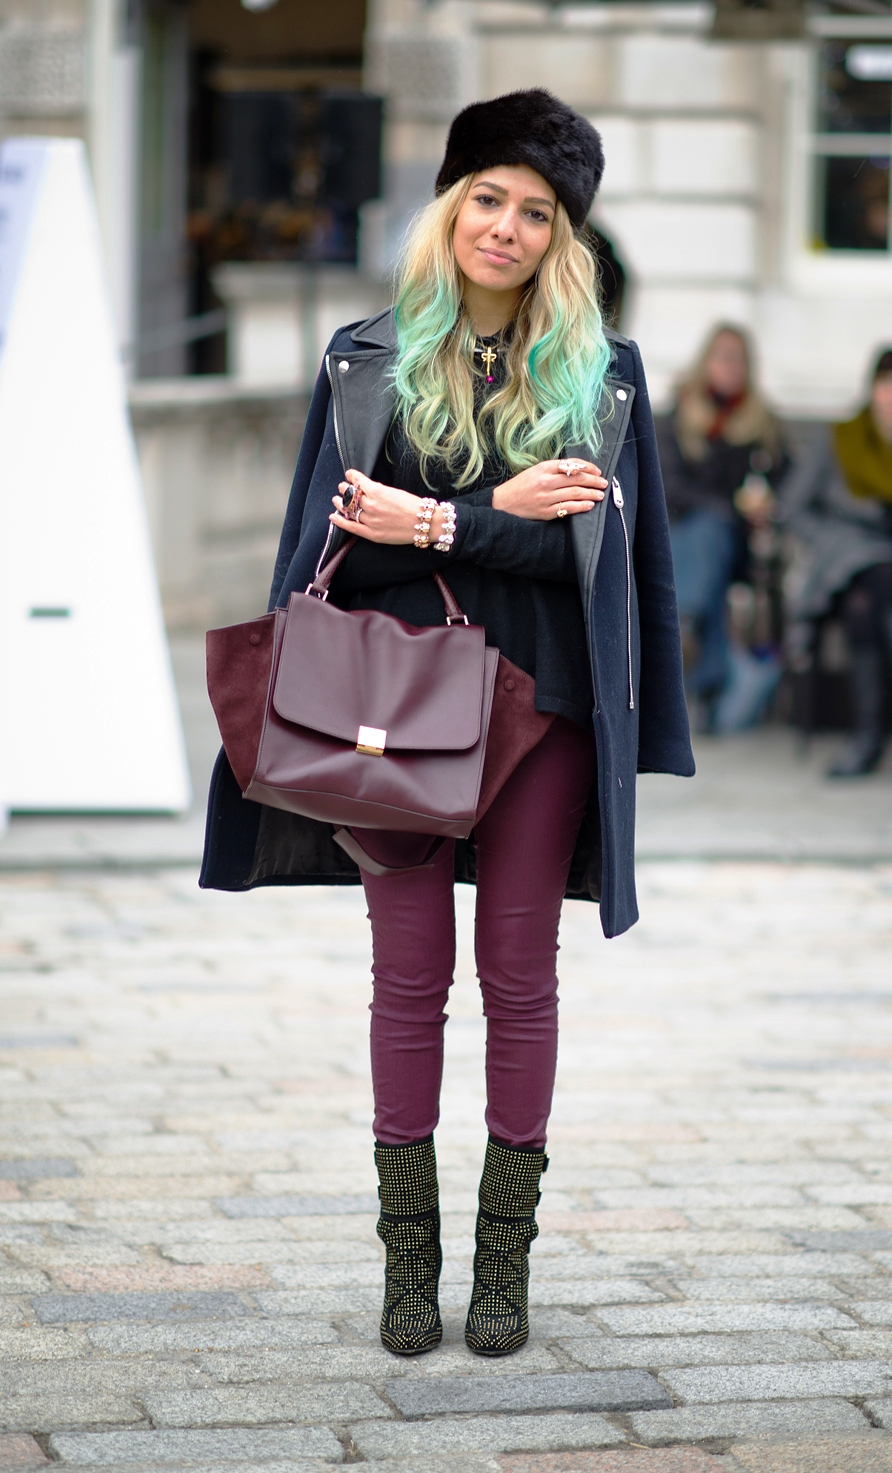 Chic-And-Fancy-Street-Style-Fashion-This-Winter-